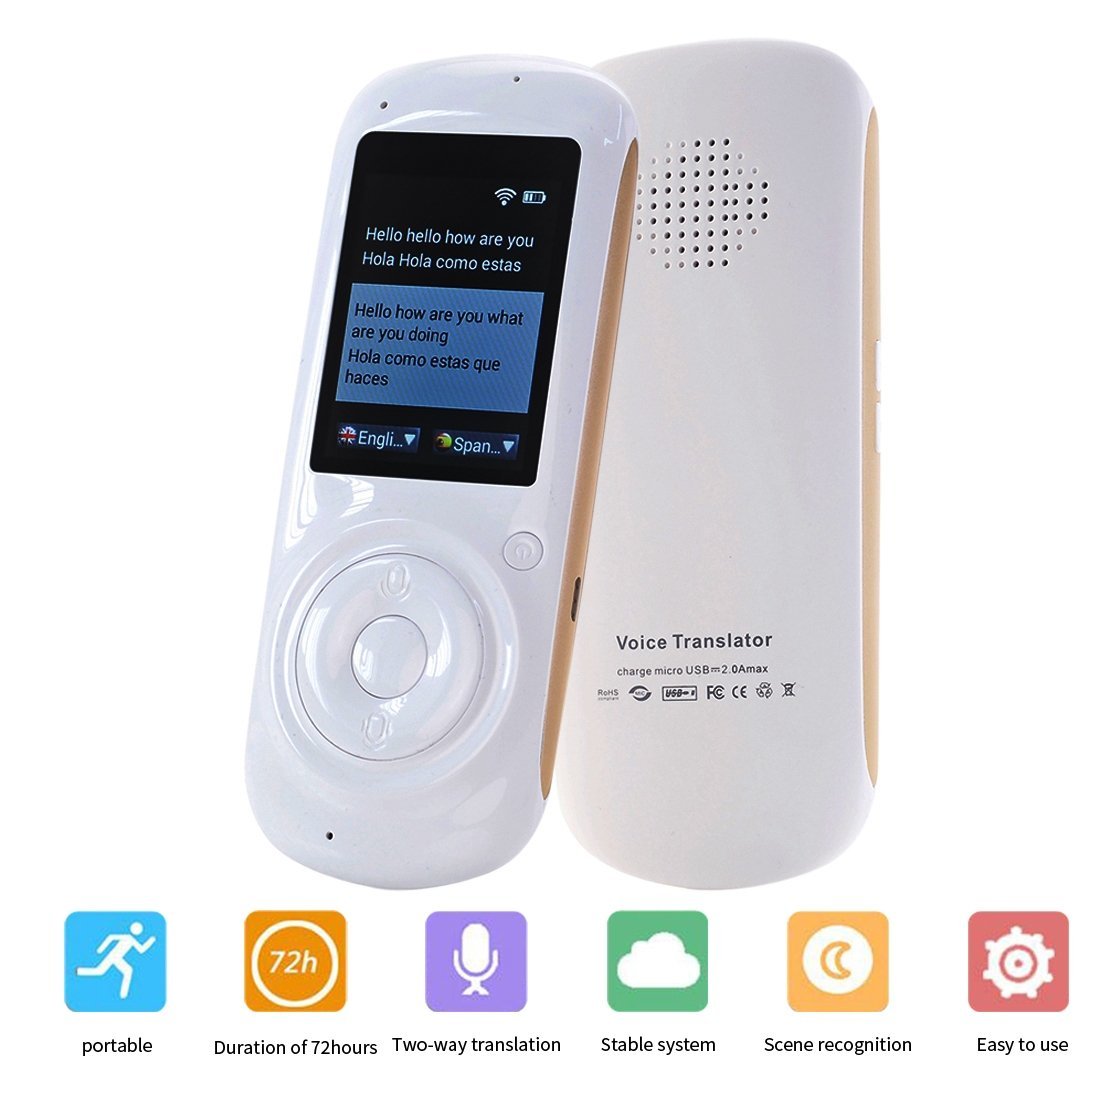 Voice Translator Smart Language Two Way WiFi 2.4inch IPS Capacitive Touch Screen Support Multi- Languages Freely Translation LTD W88